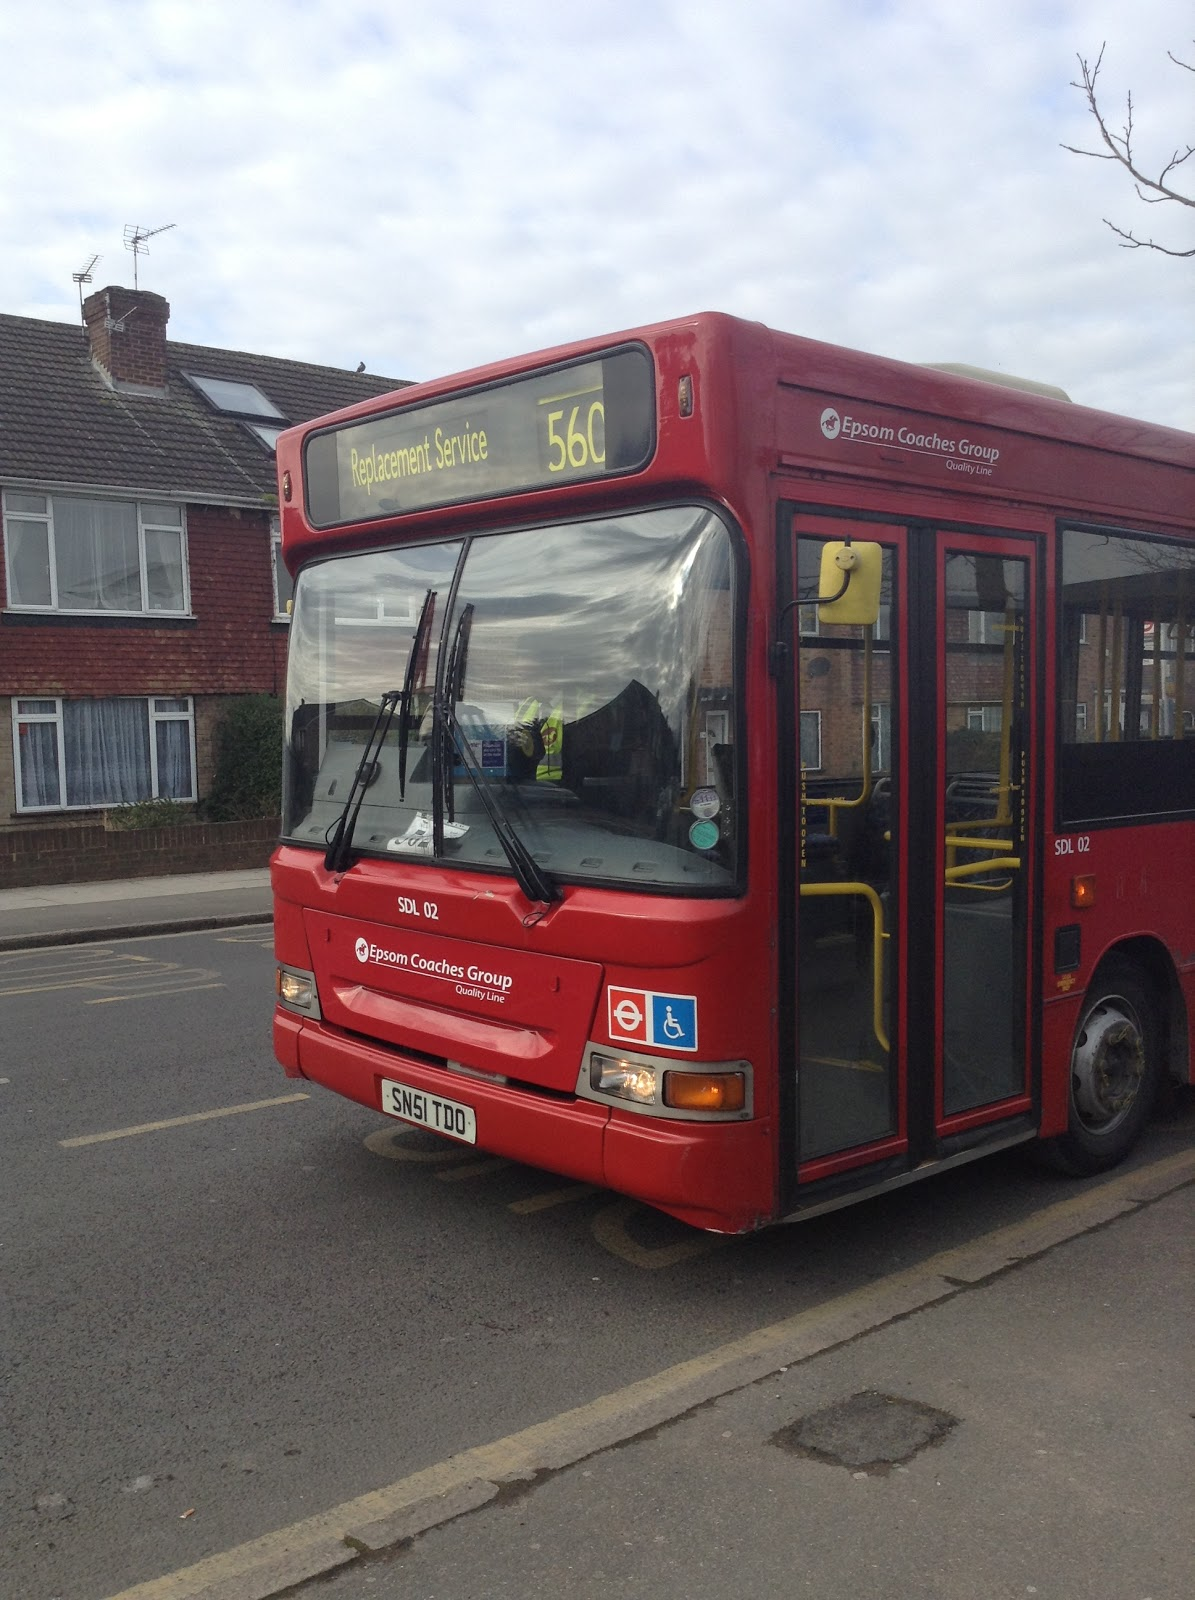 london bus scene: routes 560 and 518